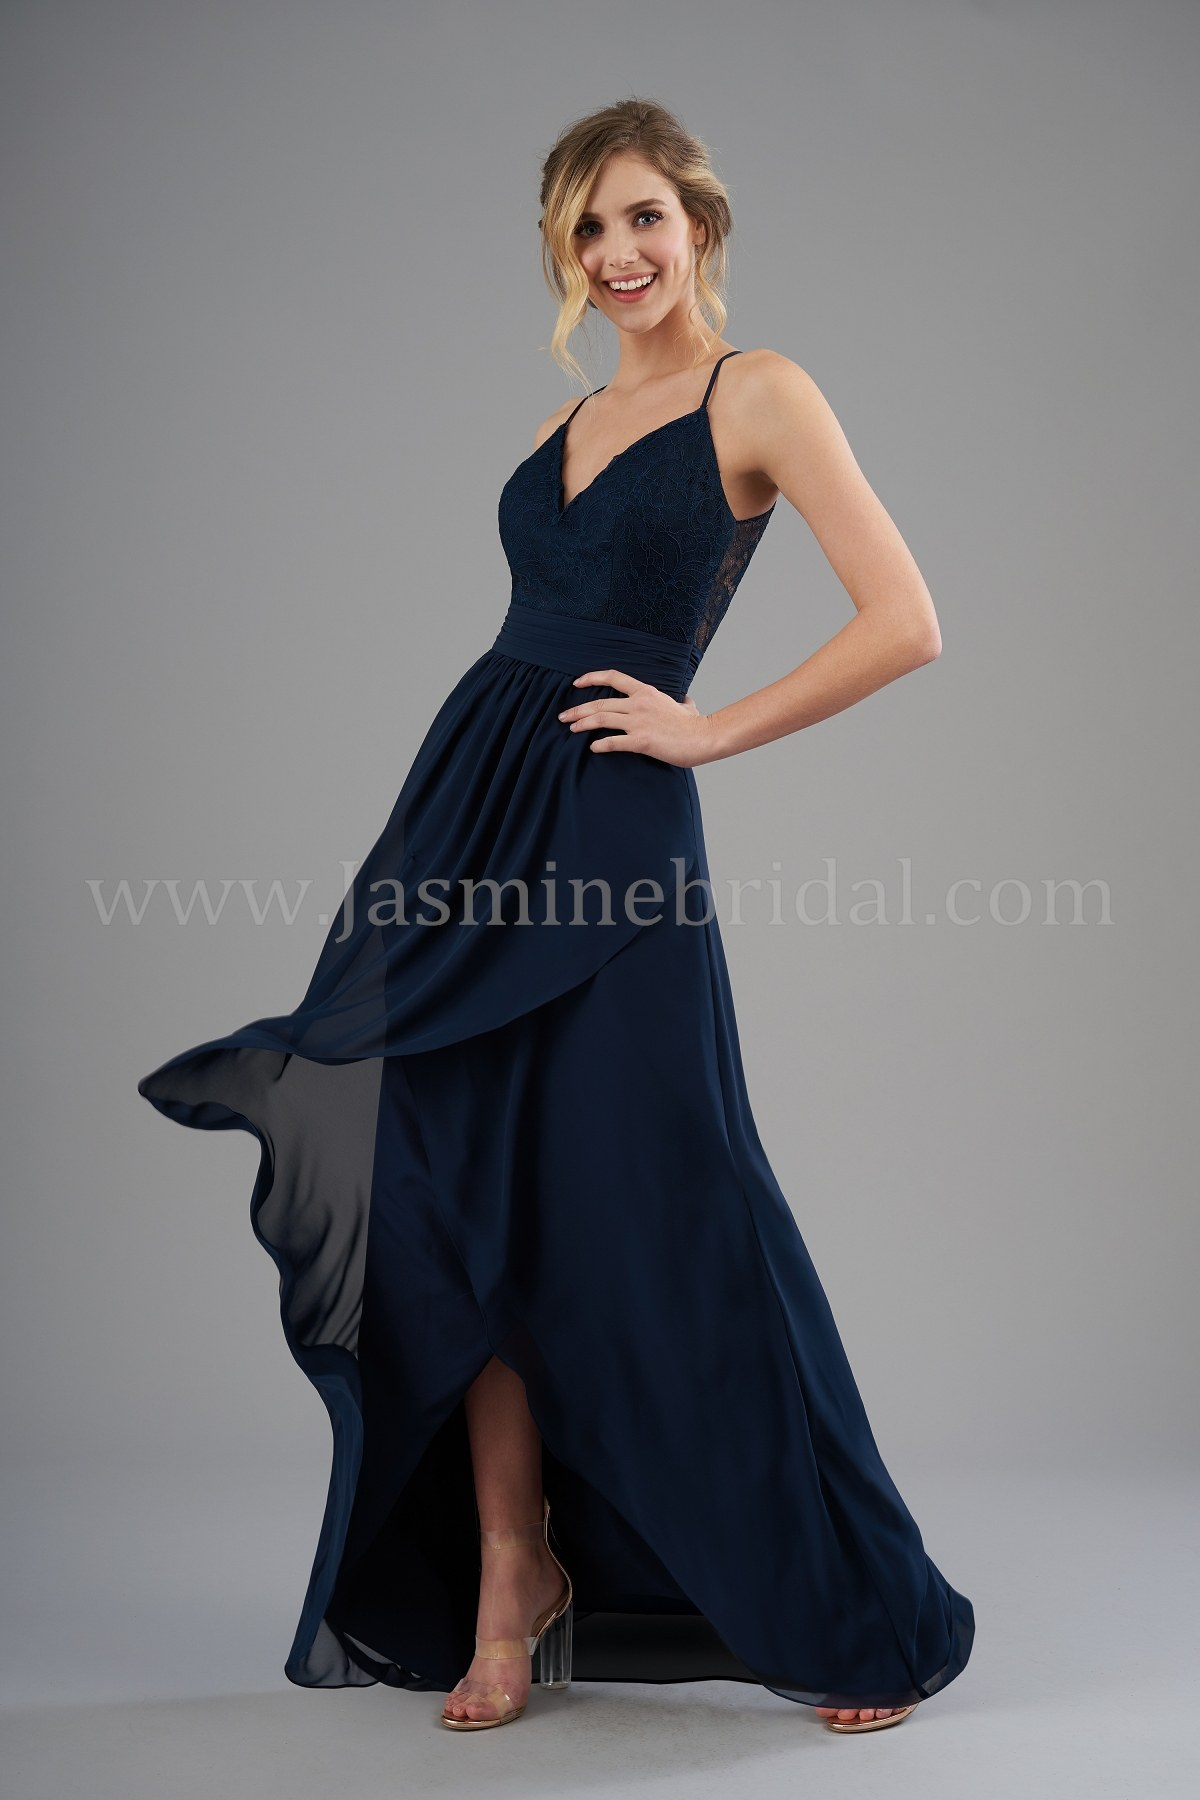 bridesmaid-dresses-B203064-F